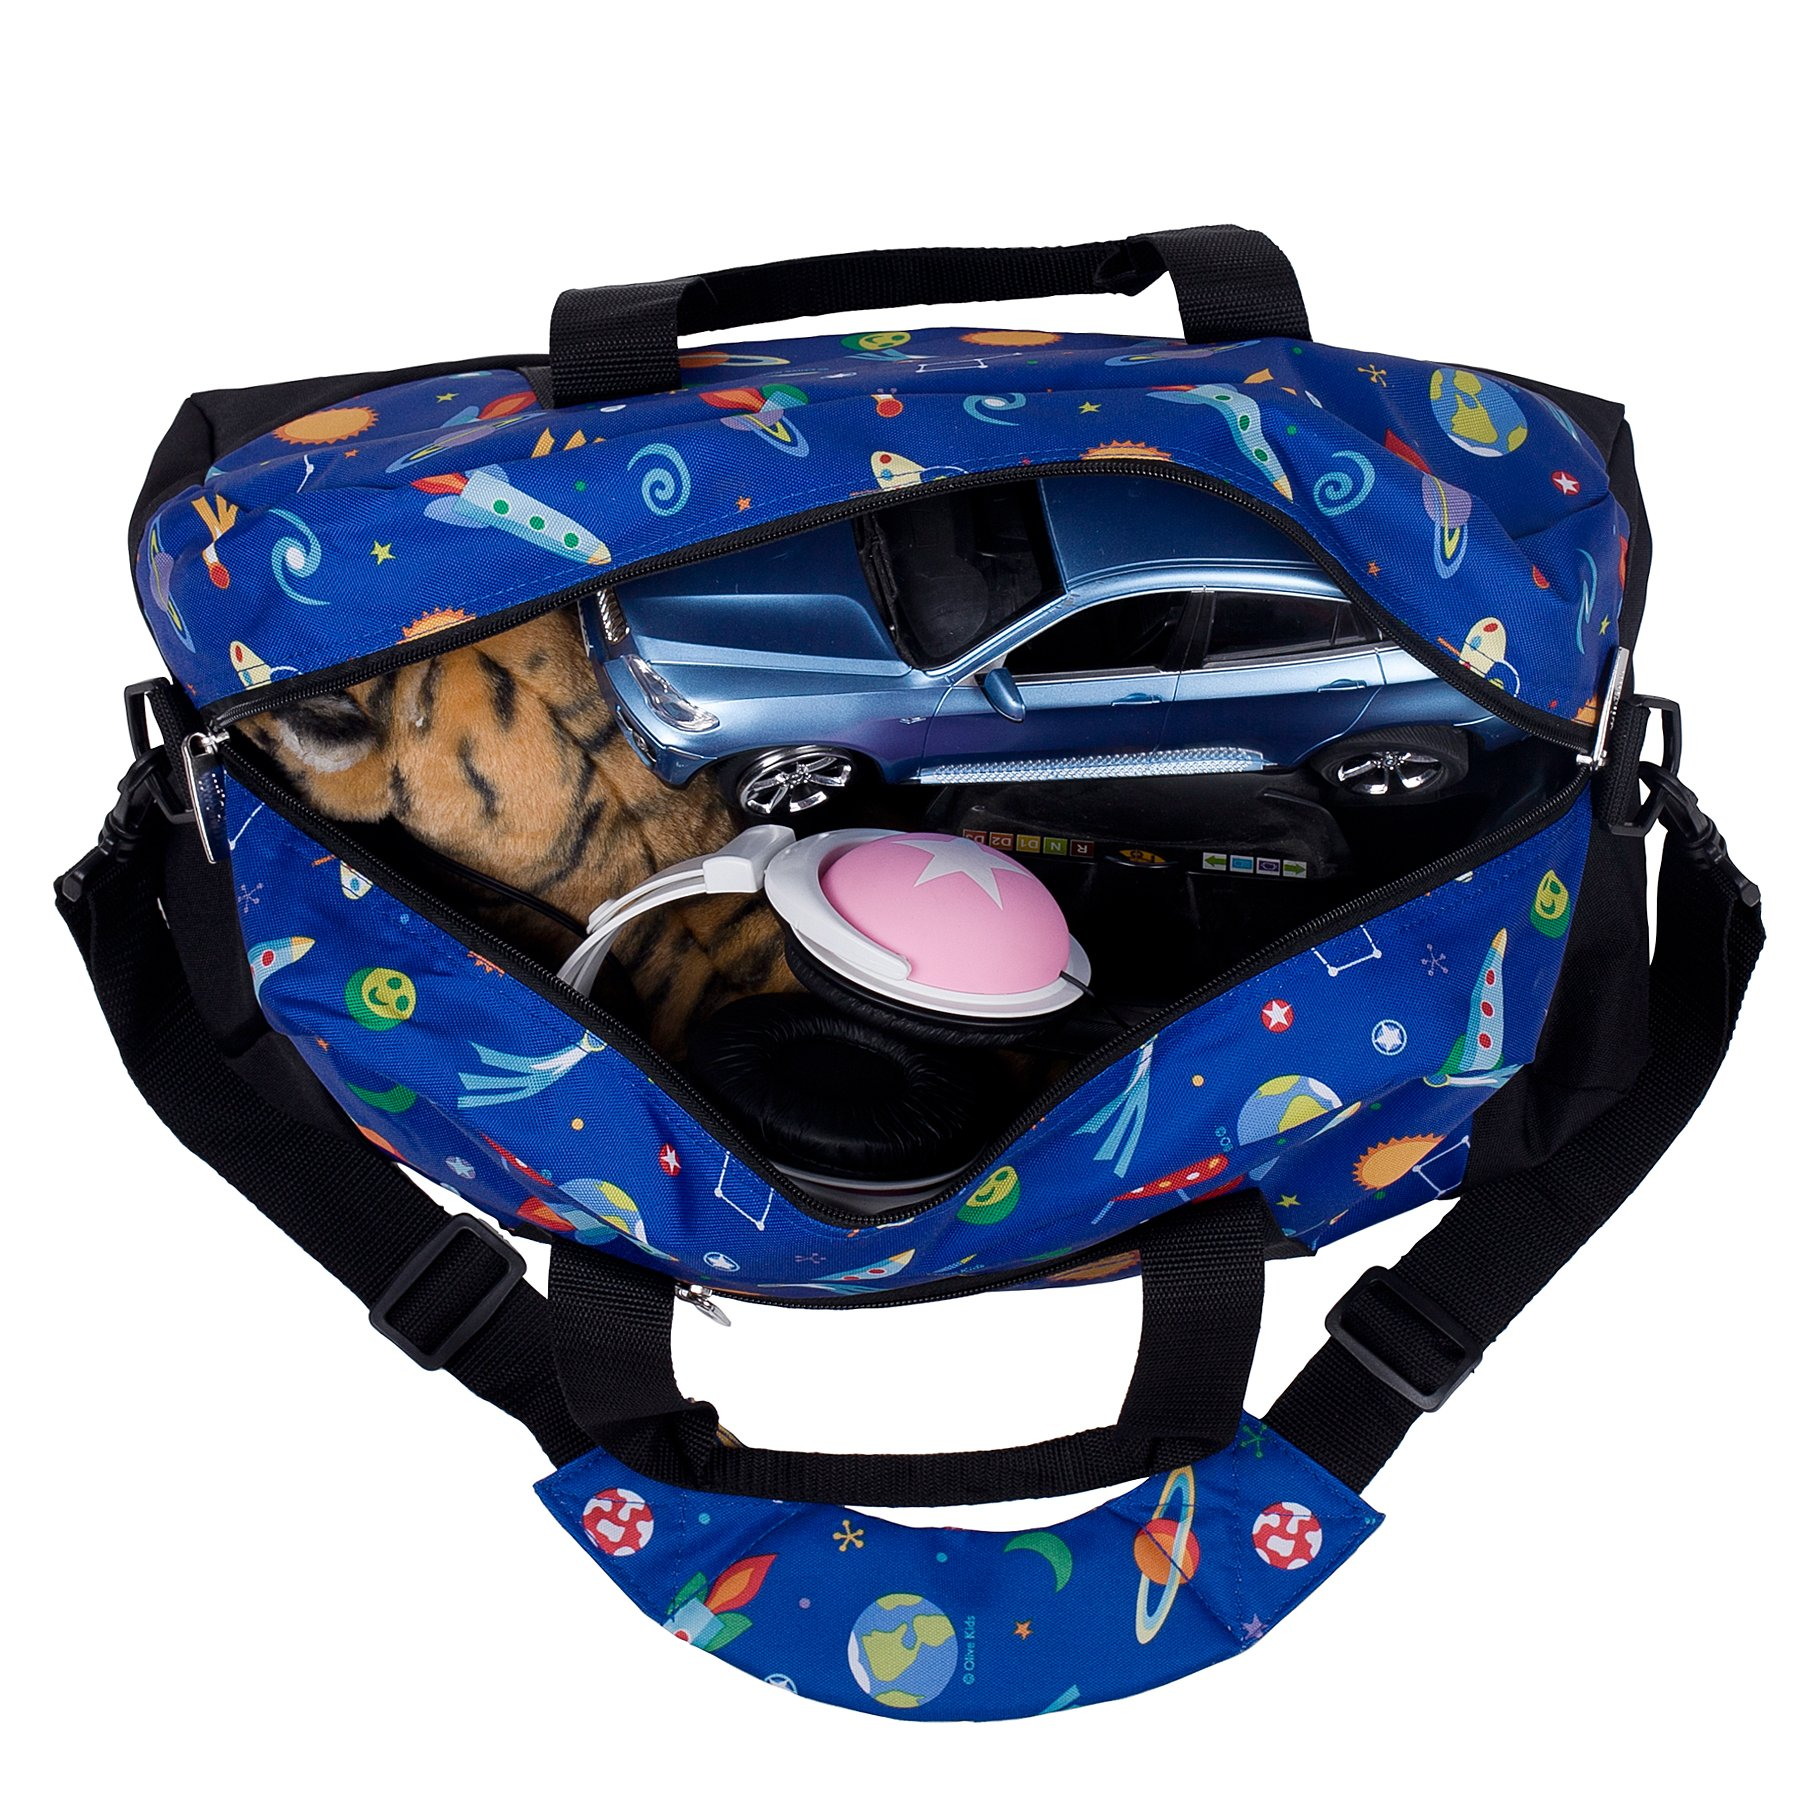 Wildkin Overnighter Duffel Bag, Features Moisture-Resistant Lining and Padded Shoulder Strap, Perfect for Sleepovers, Sports Practice, and Travel, Olive Kids Designs – Out of this World by Wildkin (Image #4)